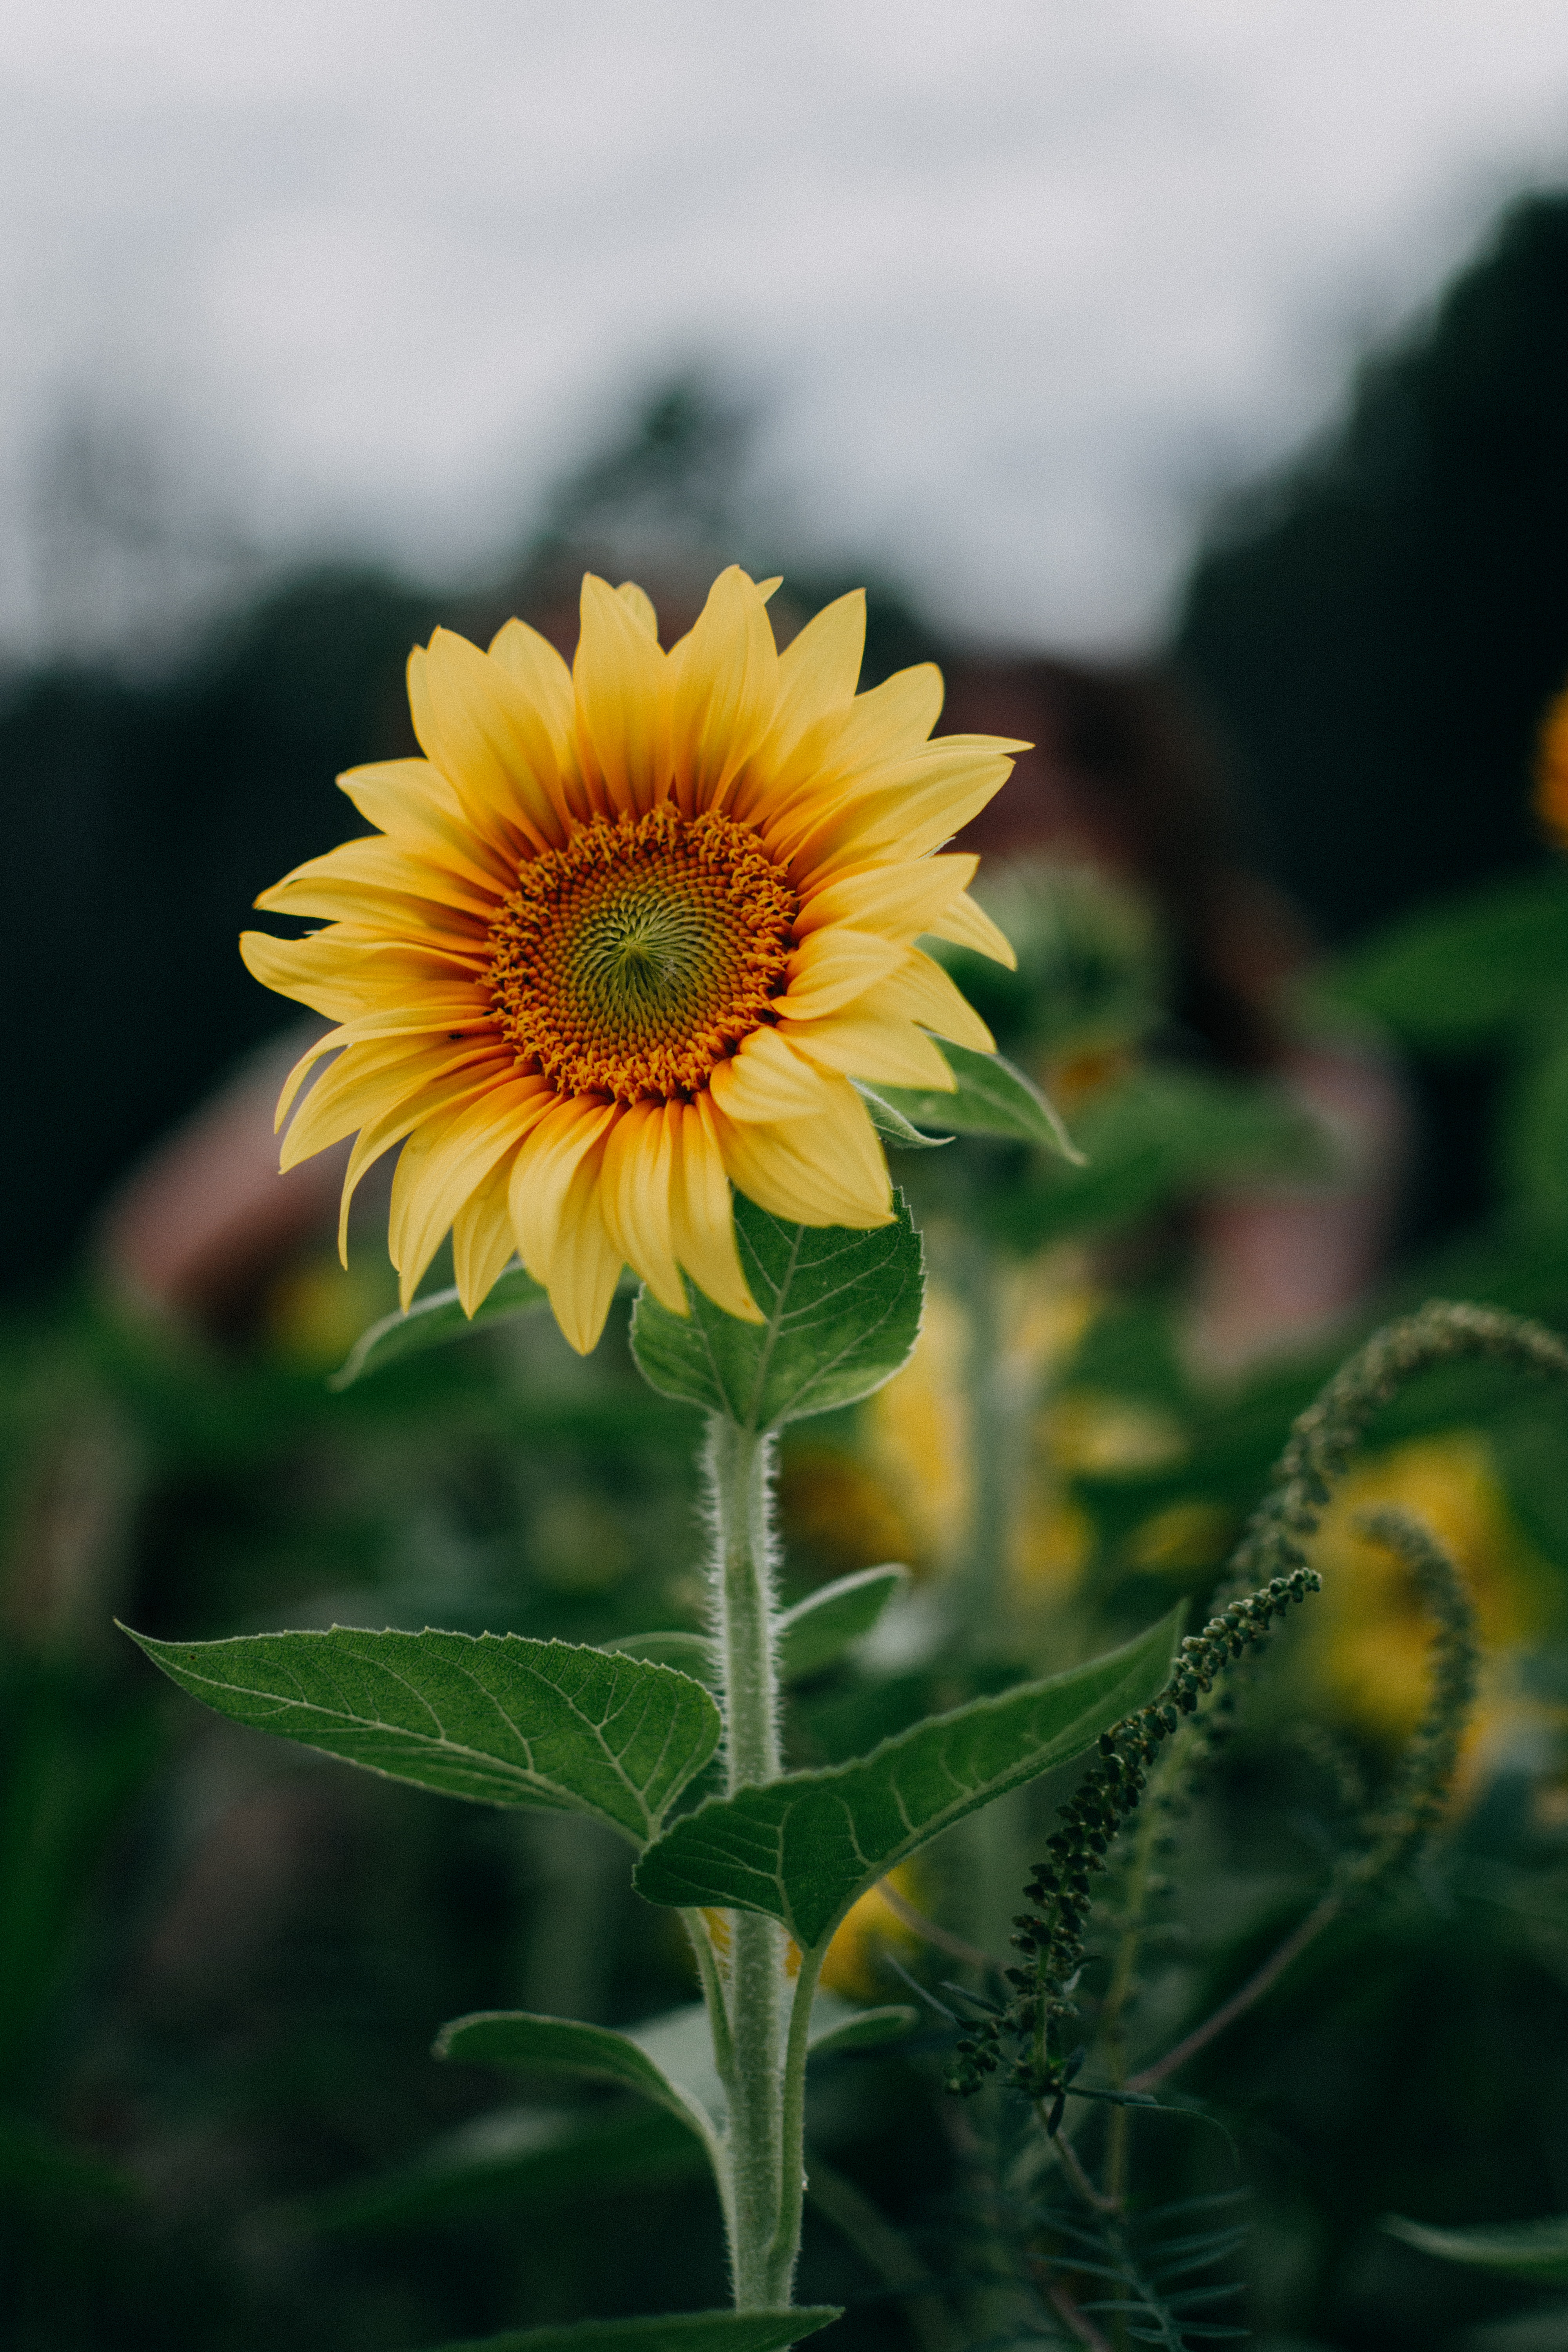 Blossoming Images Of Sunflowers Pexels Free Stock Photos